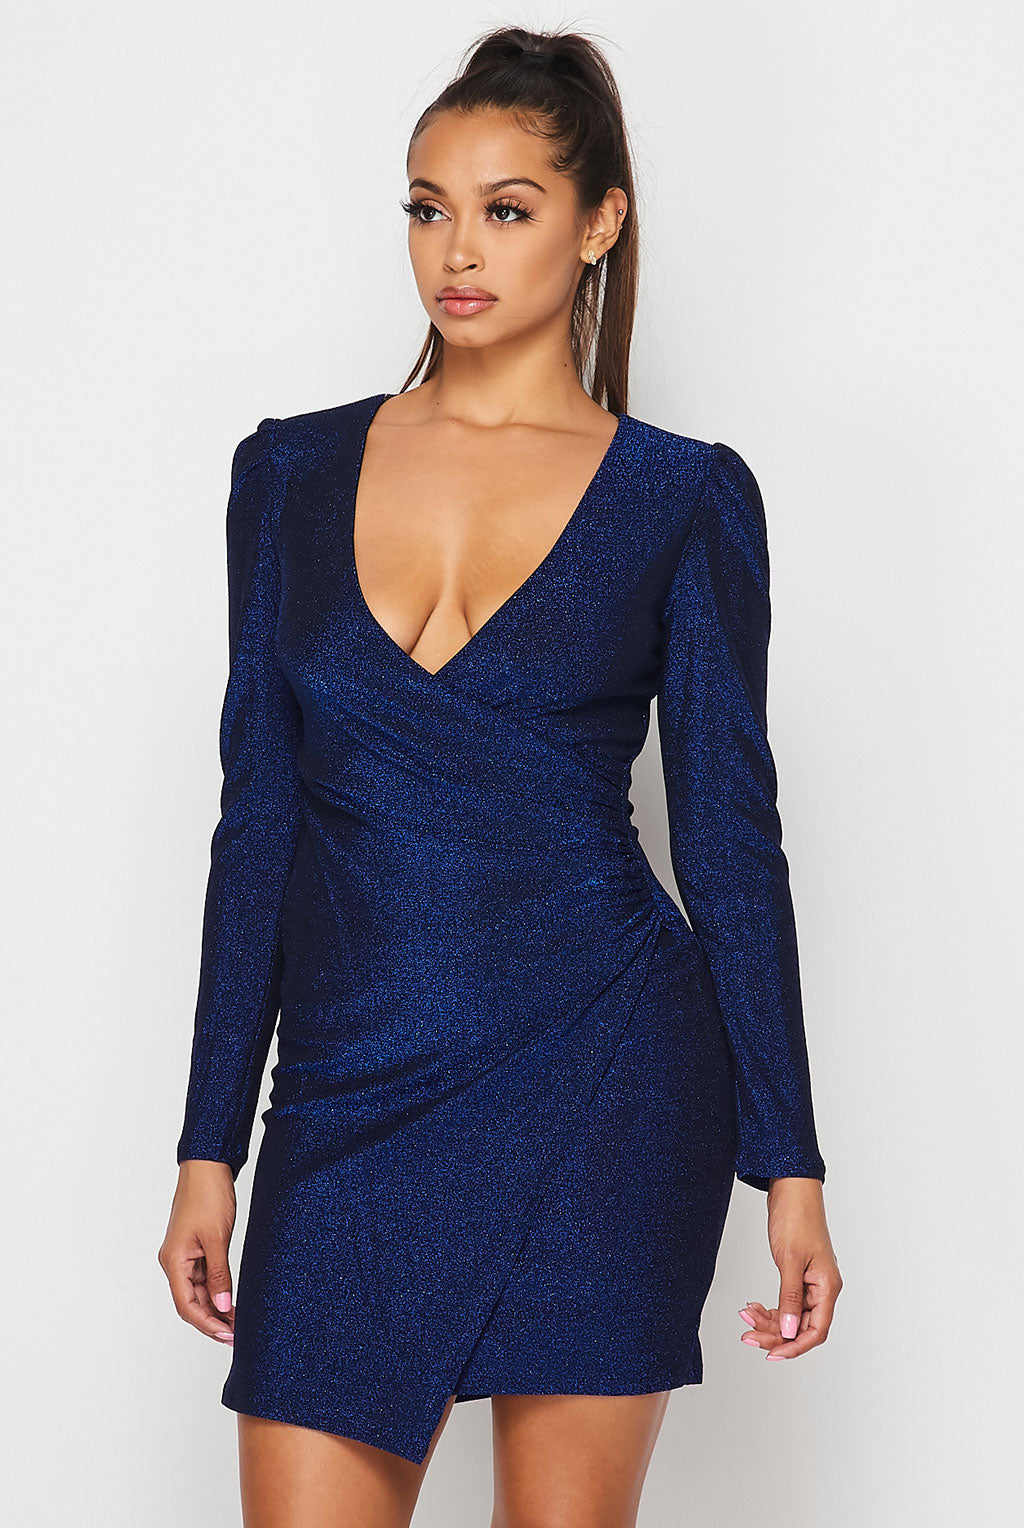 Teeze Me | Long Sleeve V Neck Metallic Short Dress | Royal/Black